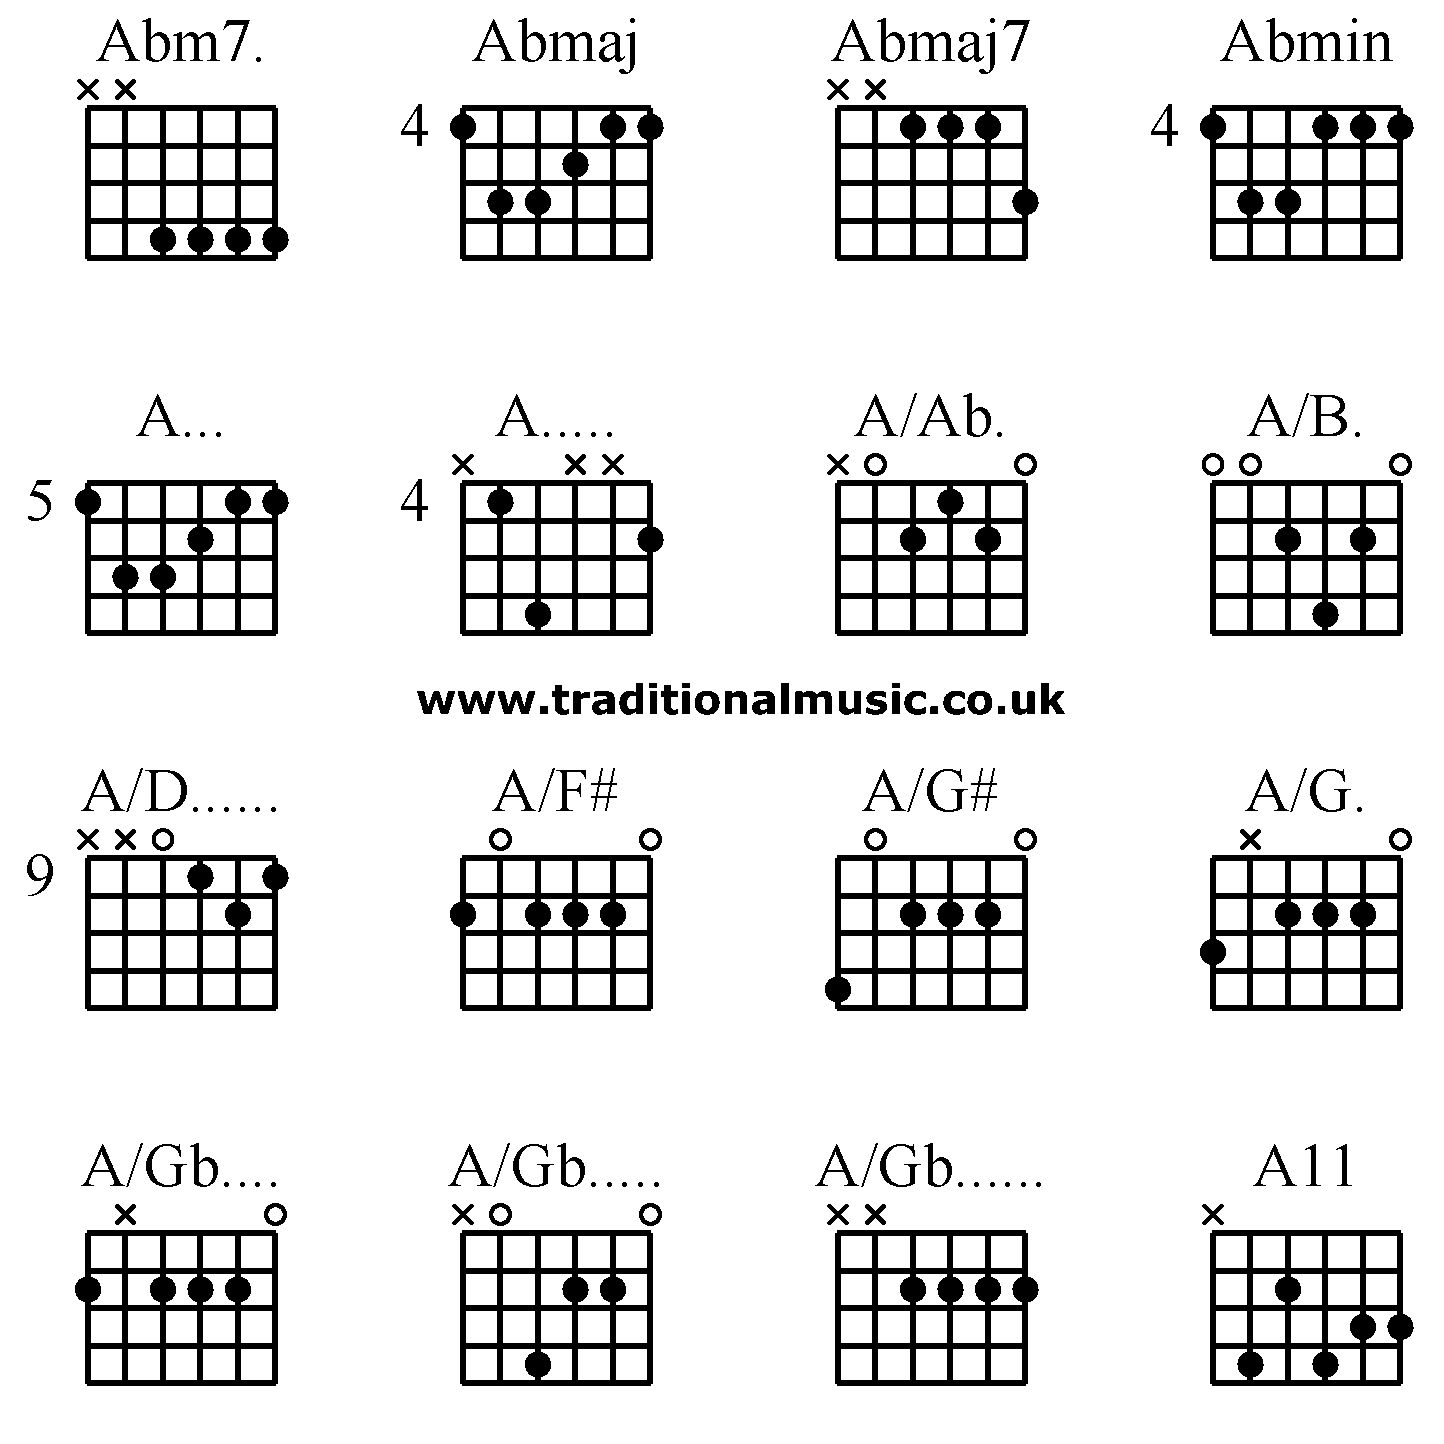 Advanced Guitar Chords Abm7 Abmaj Abmaj7 Abmin A A Aab